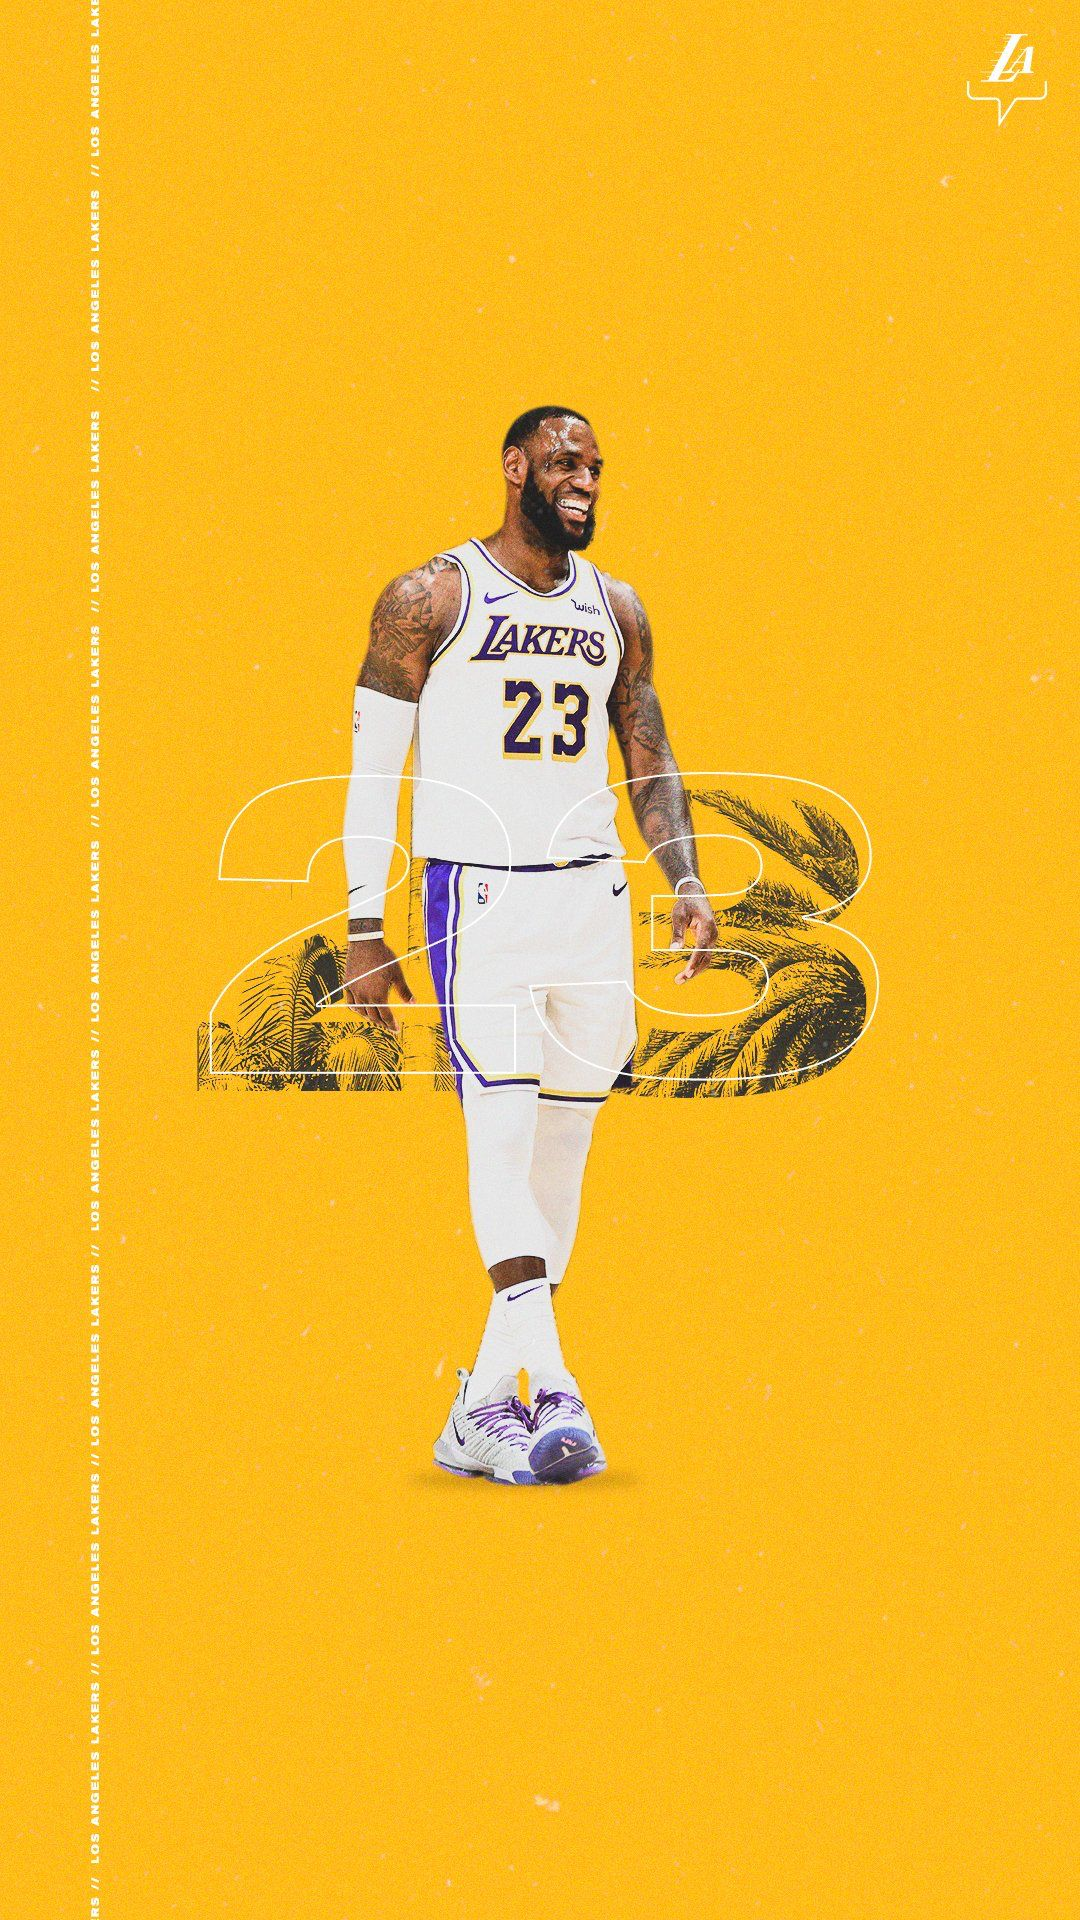 Pin by Chris DeConna on inspired Lebron james wallpapers